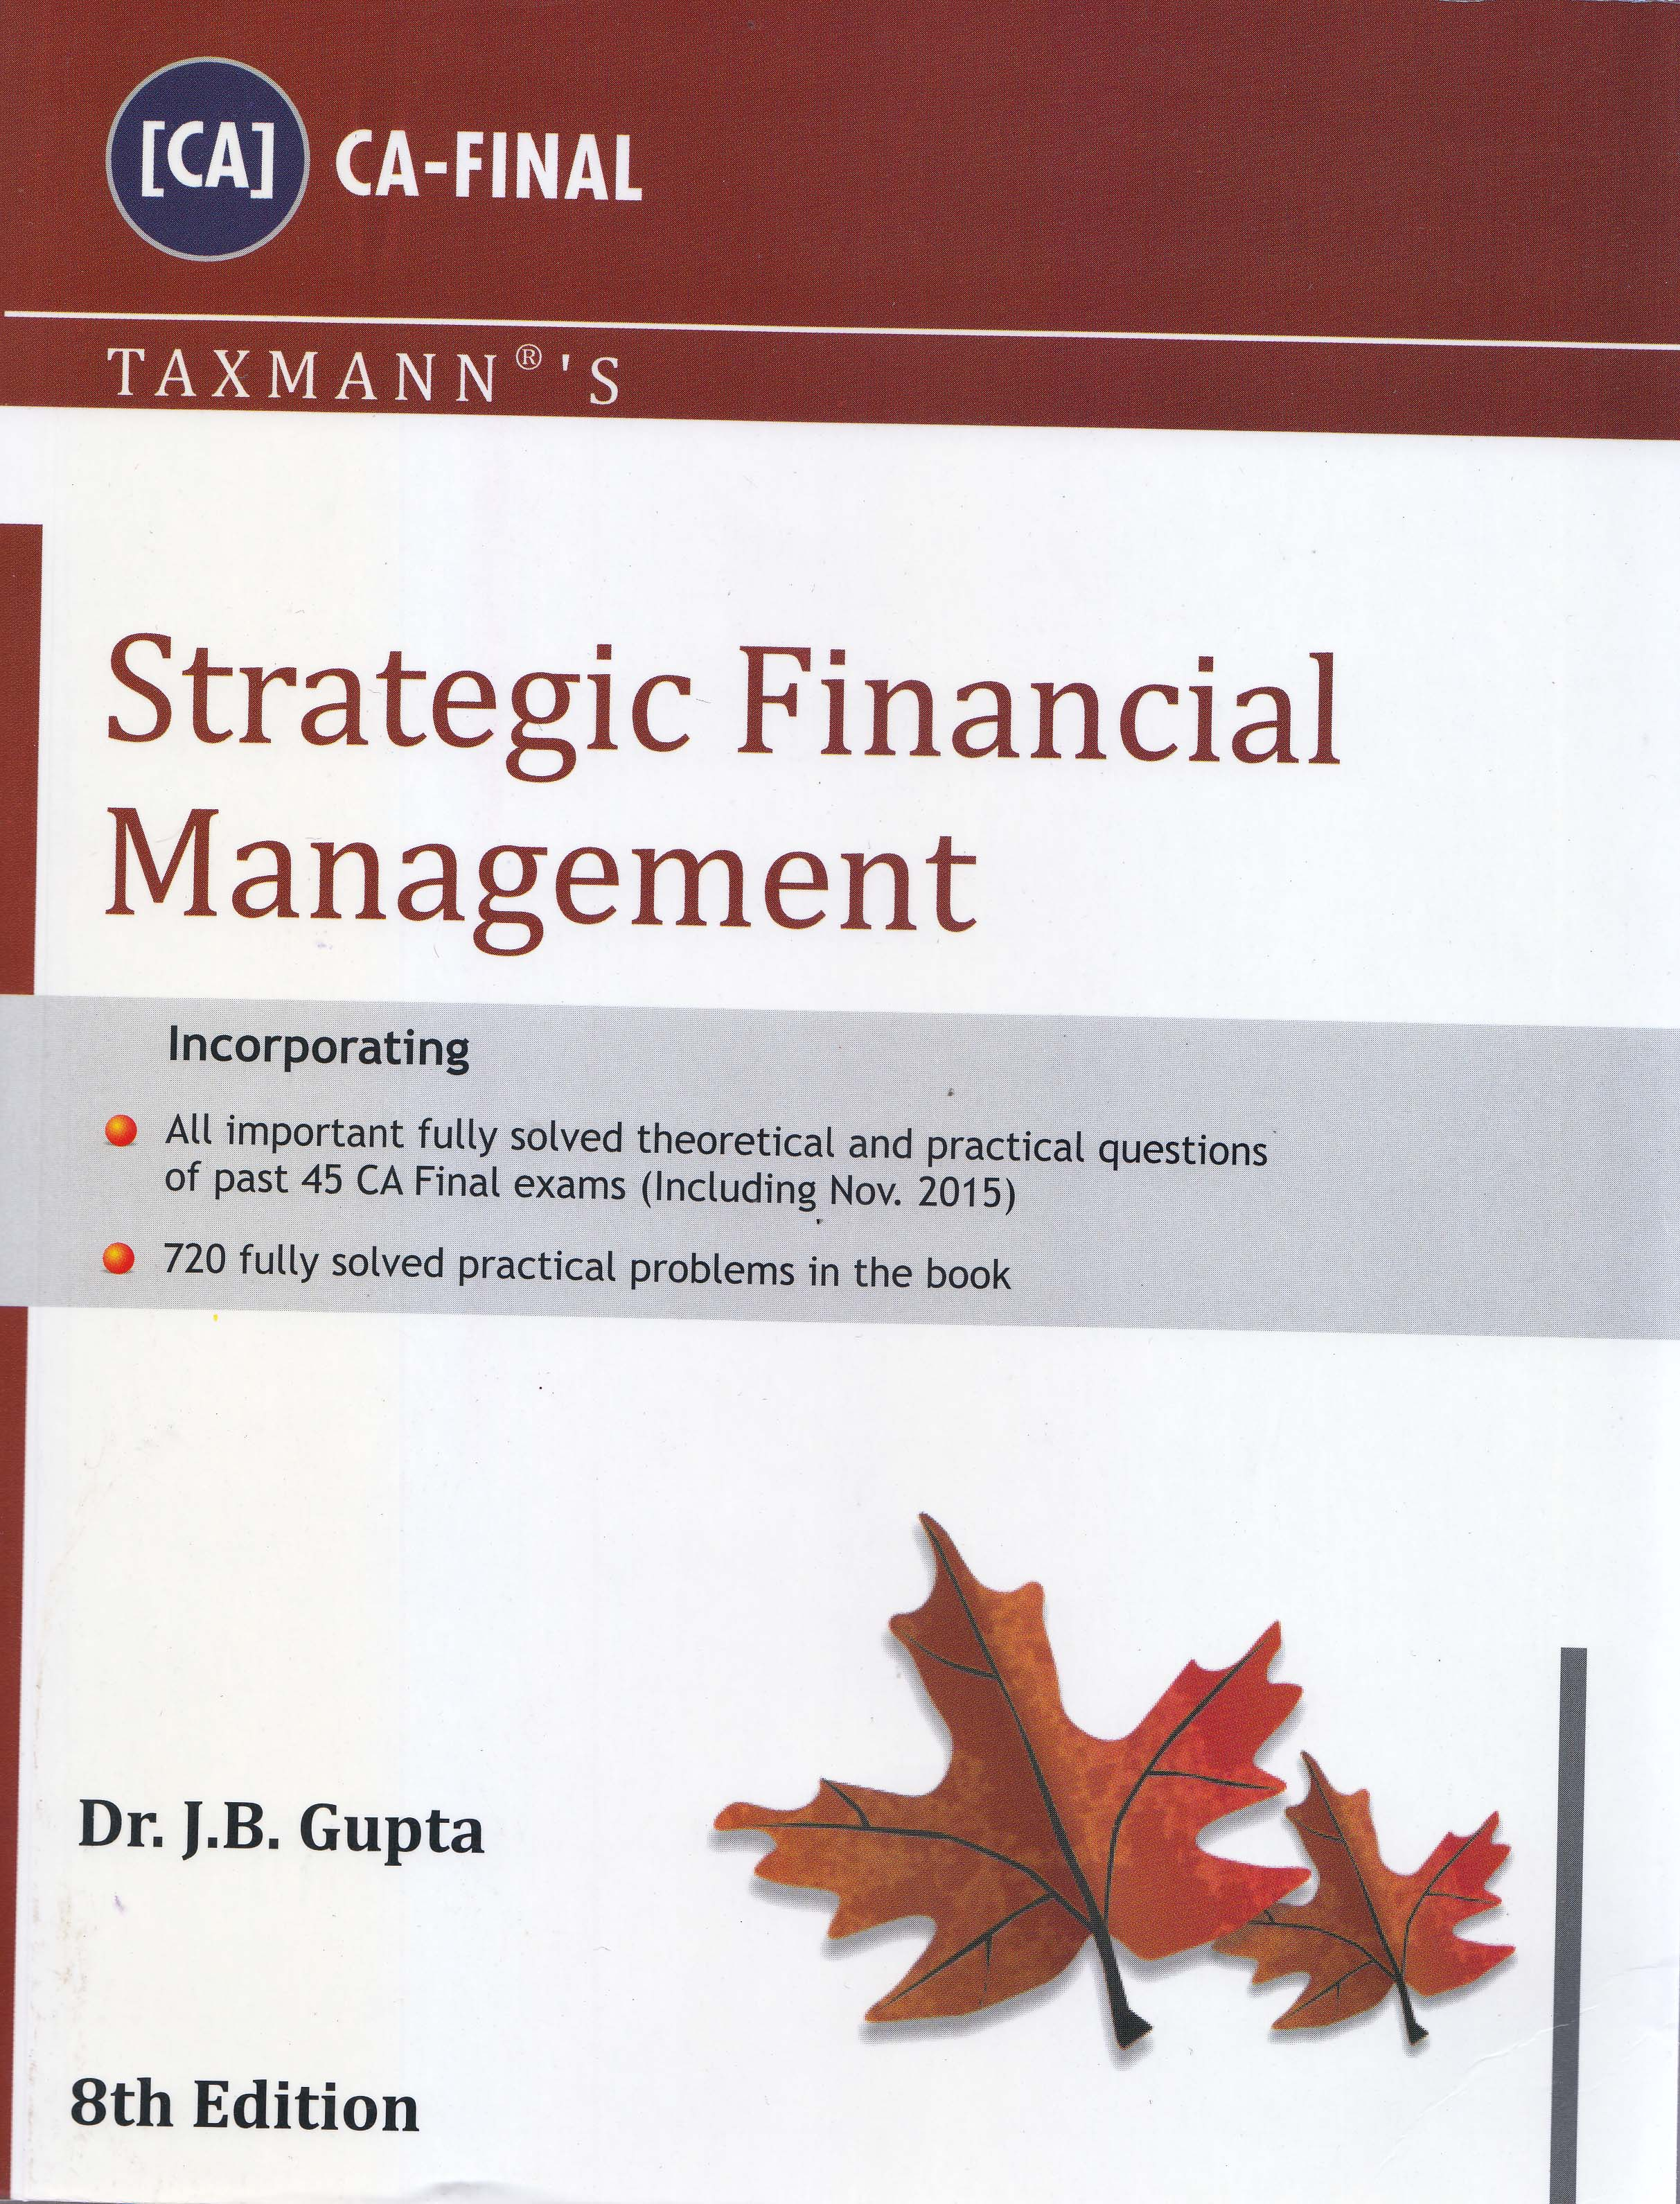 Taxmann's Strategic Financial Management for CA Final by Dr. J.B. Gupta (Taxmann's Publishing) Edition 8th, 2015